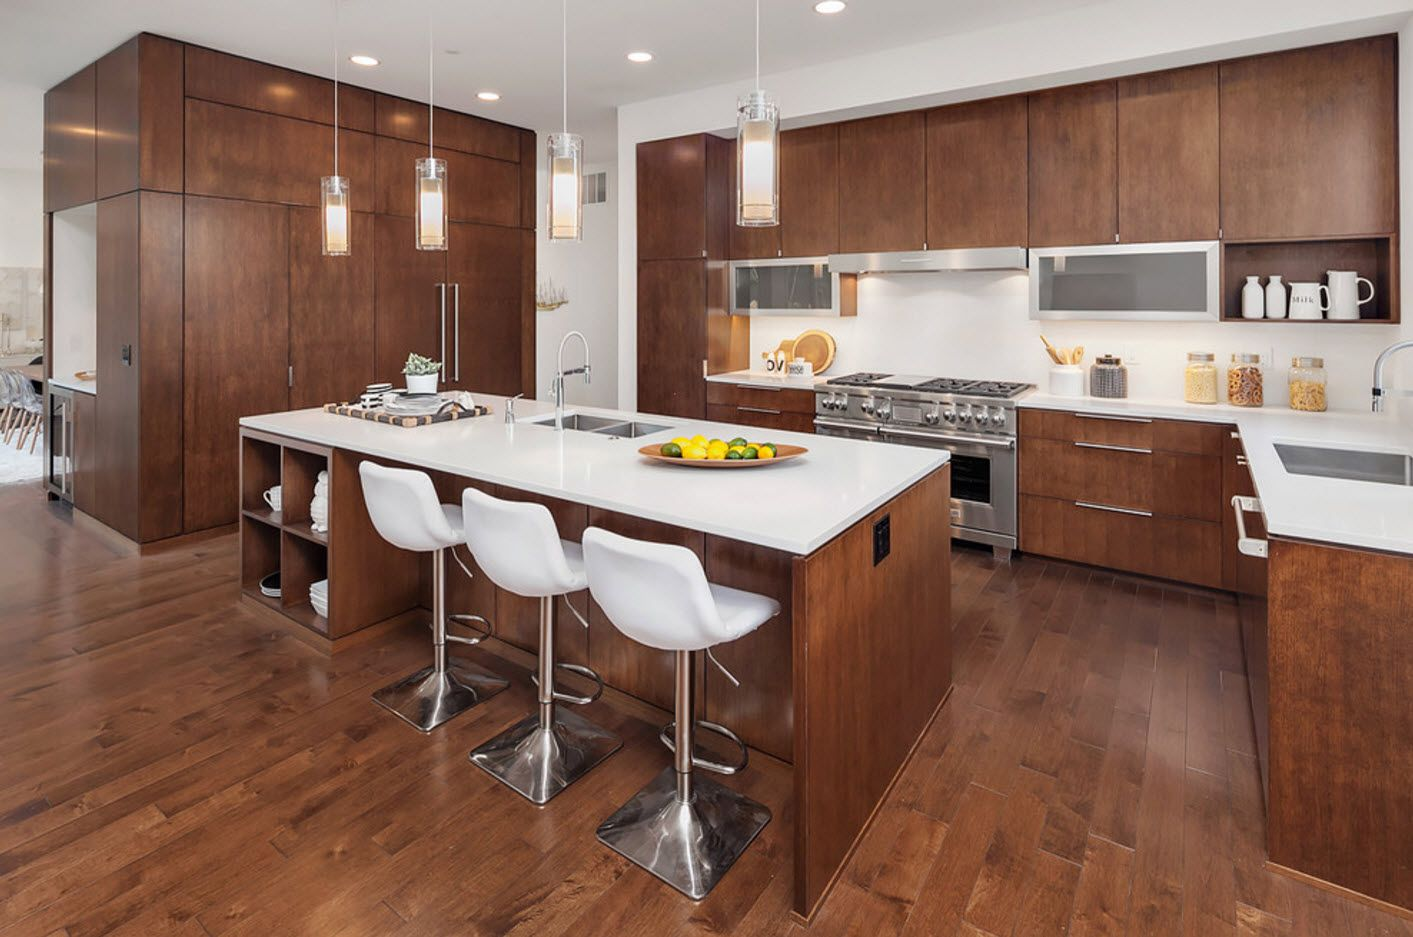 100+ Photo Design Ideas of Modern, Comfortable IKEA Kitchens. Beige wooden trimming of the whole interior